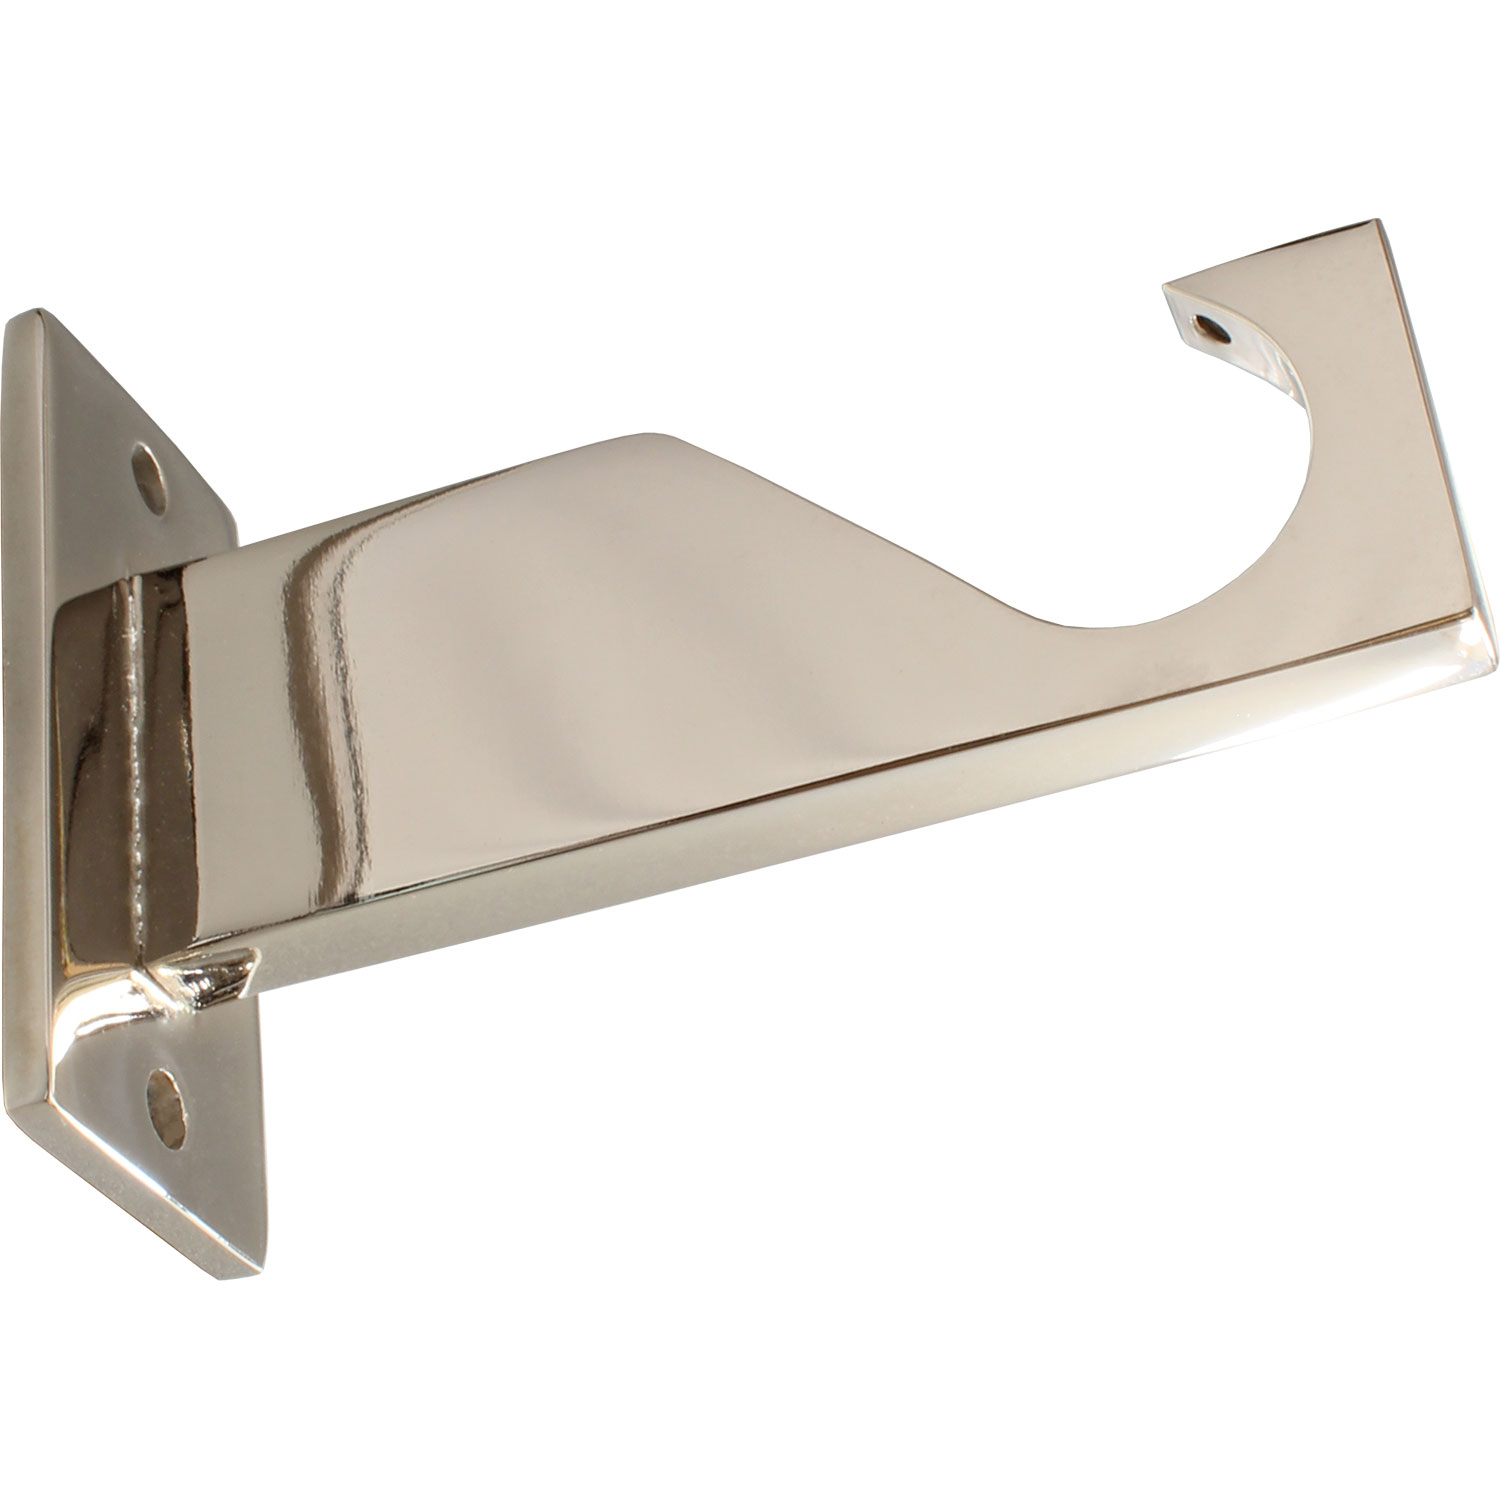 Polished Nickel finish on bracket